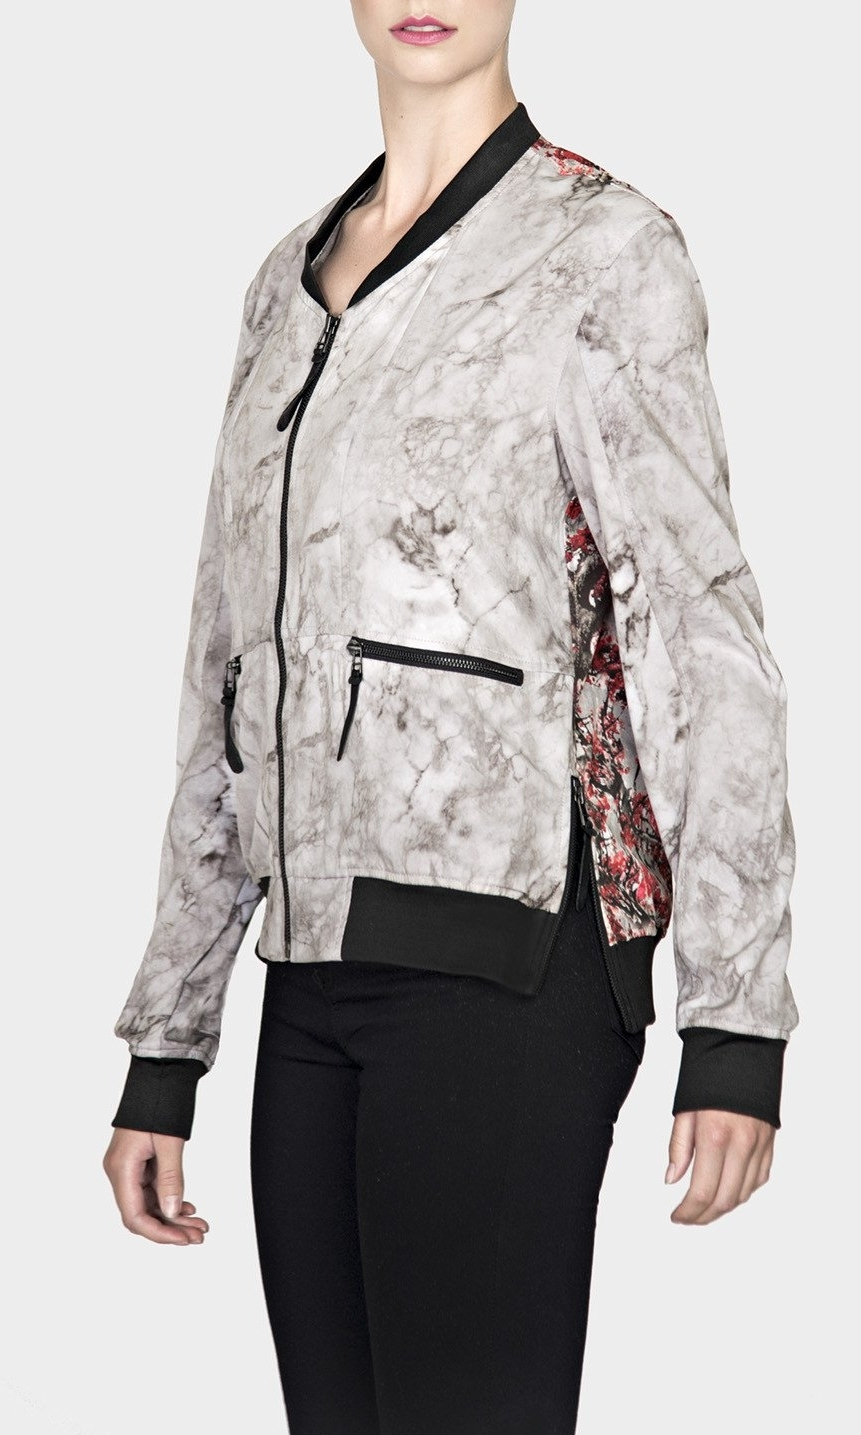 Shop Canadian leather jackets at INLAND